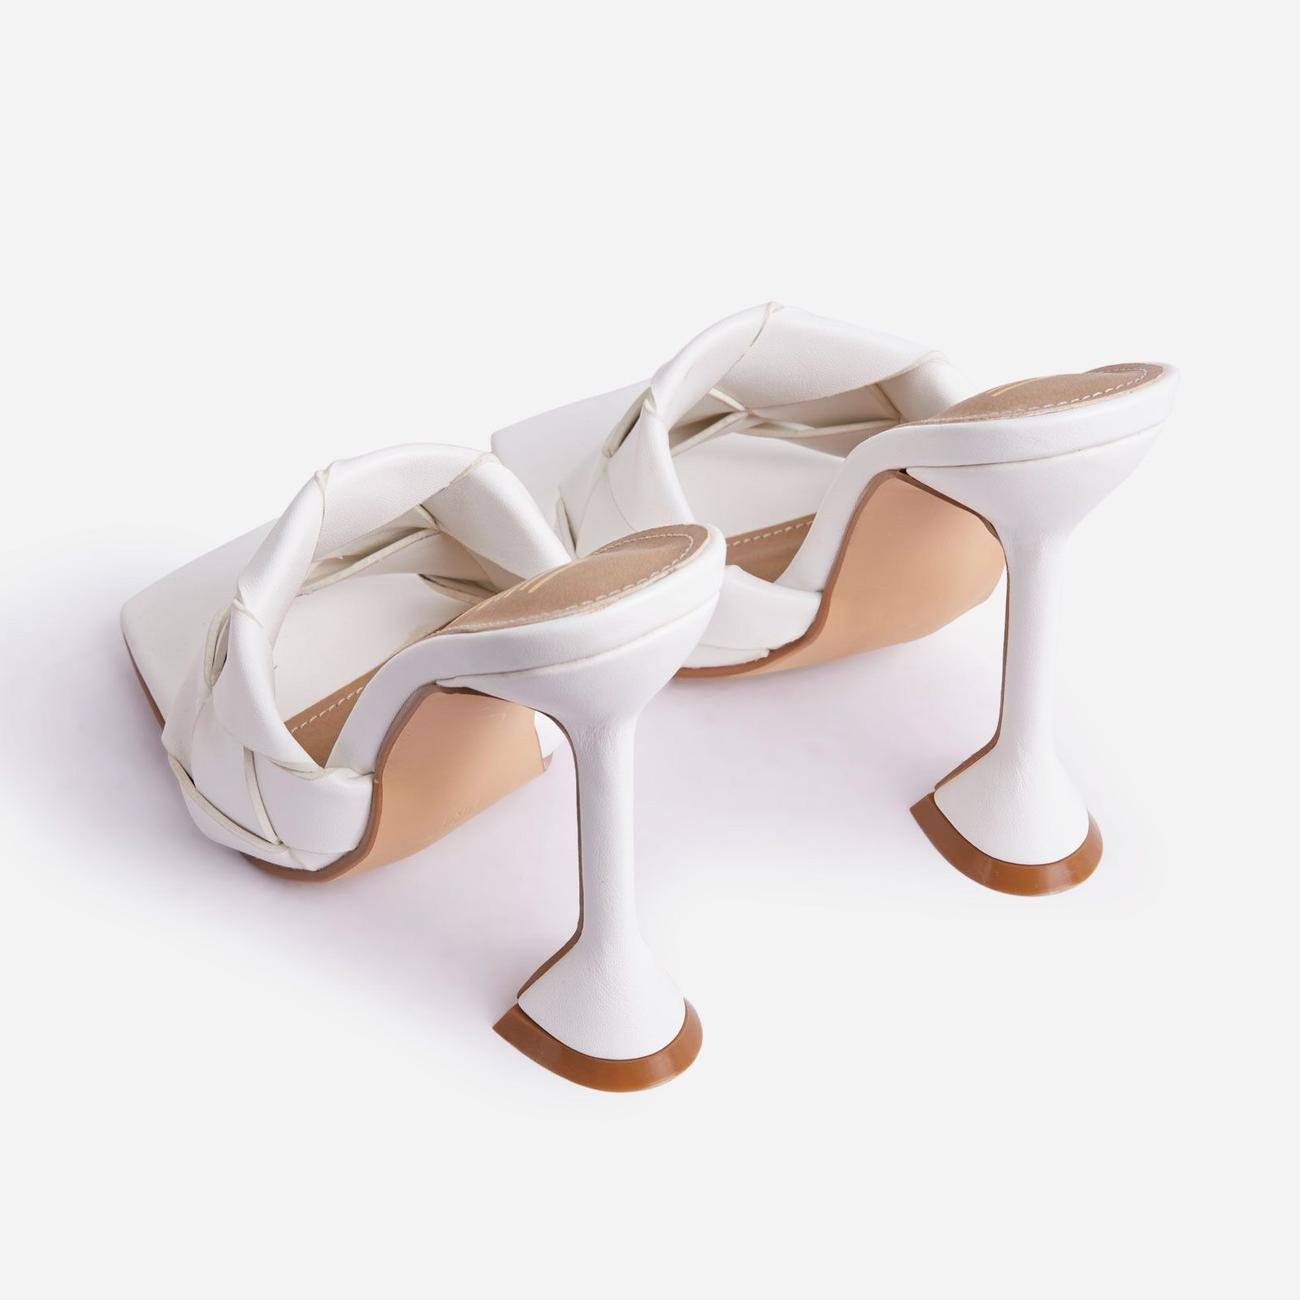 Handled Woven Square Peep Toe Pyramid Heel Mule In White Faux Leather Image 3